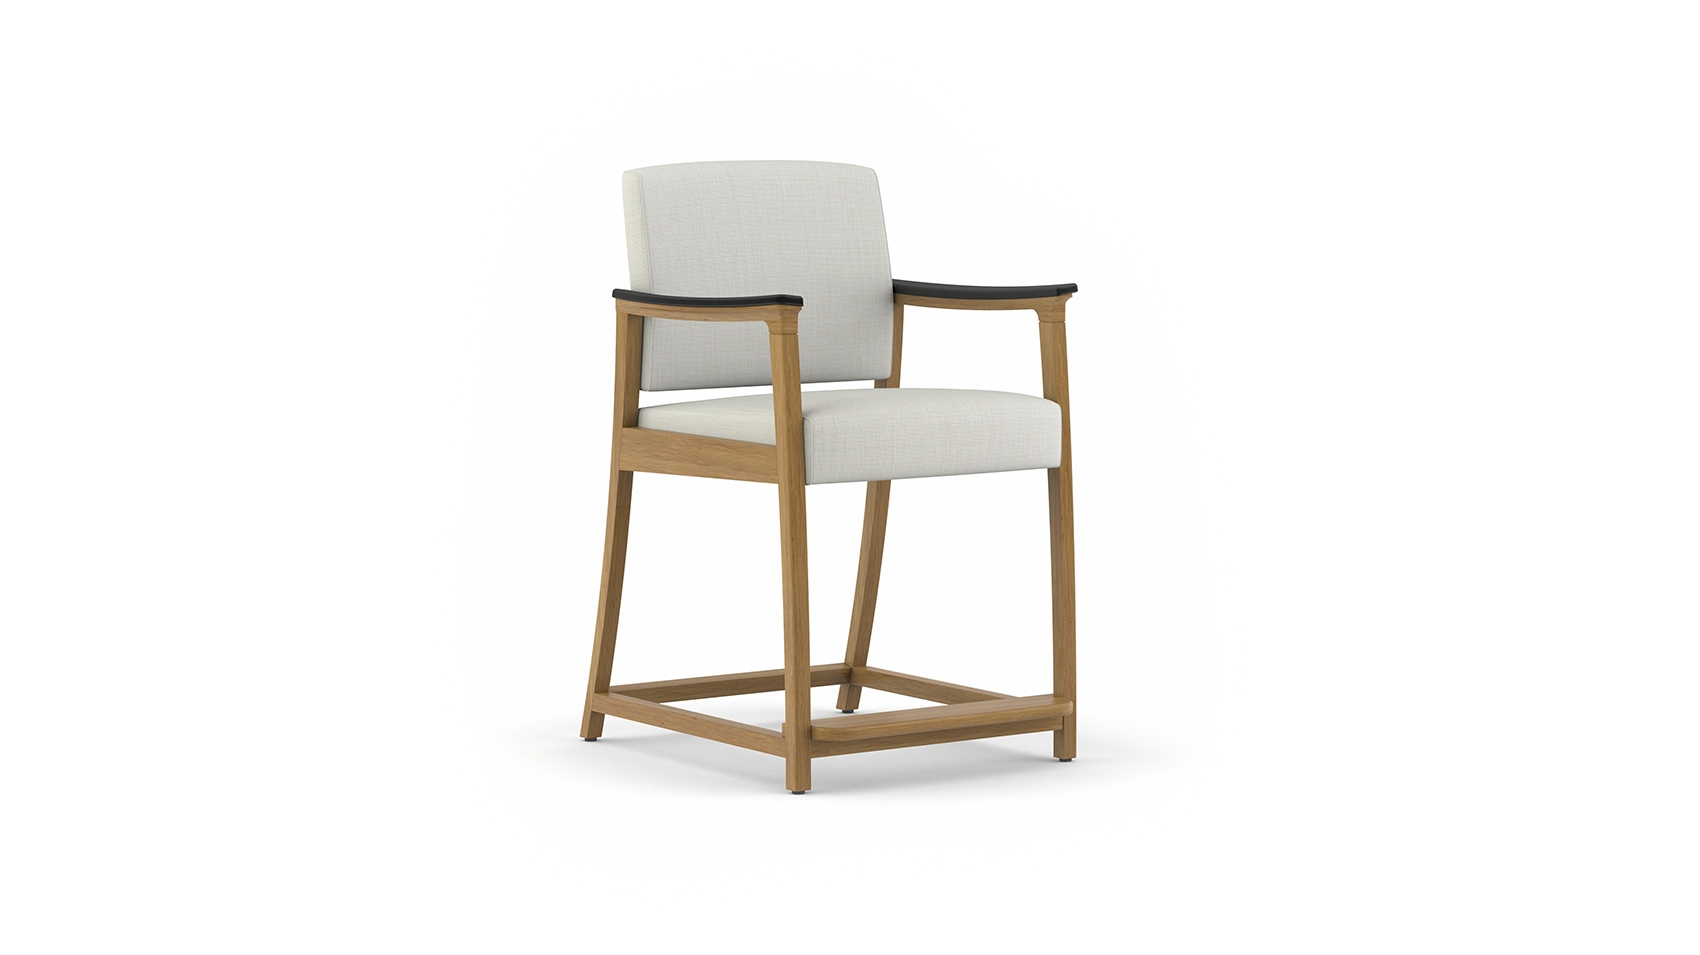 carolinia hip chair.jpg